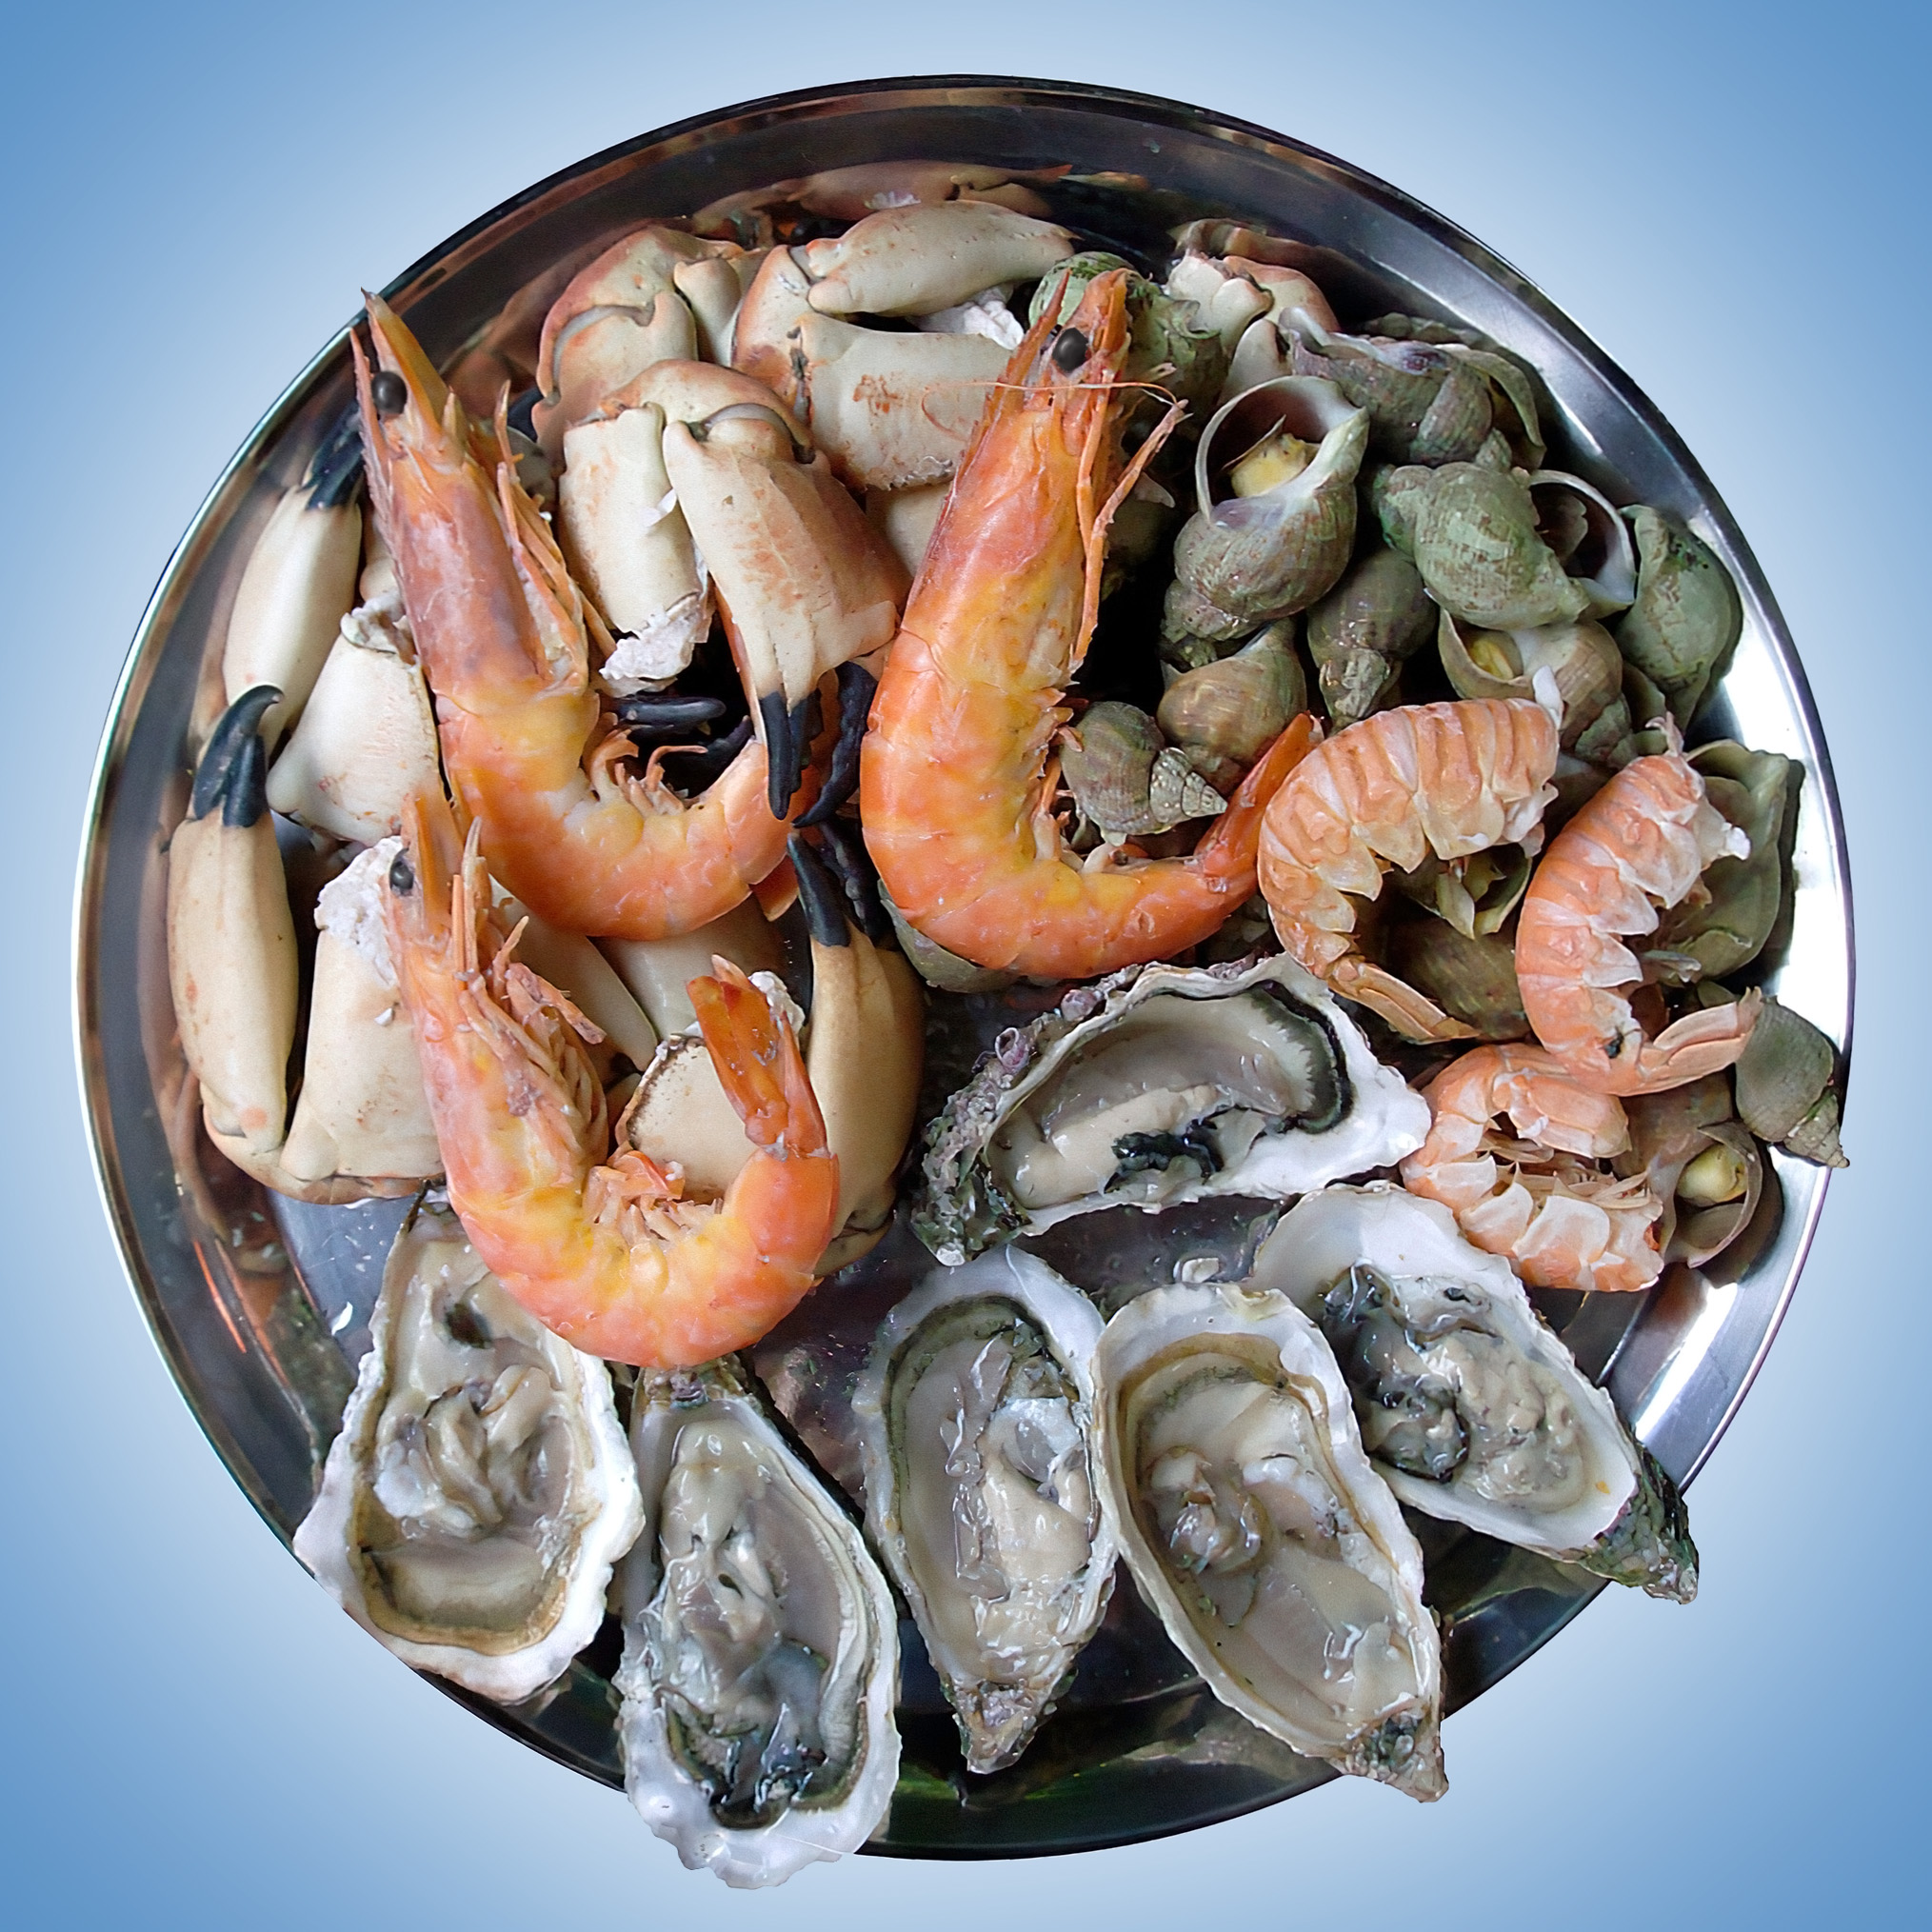 Plateau of seafood, image from Wikimedia